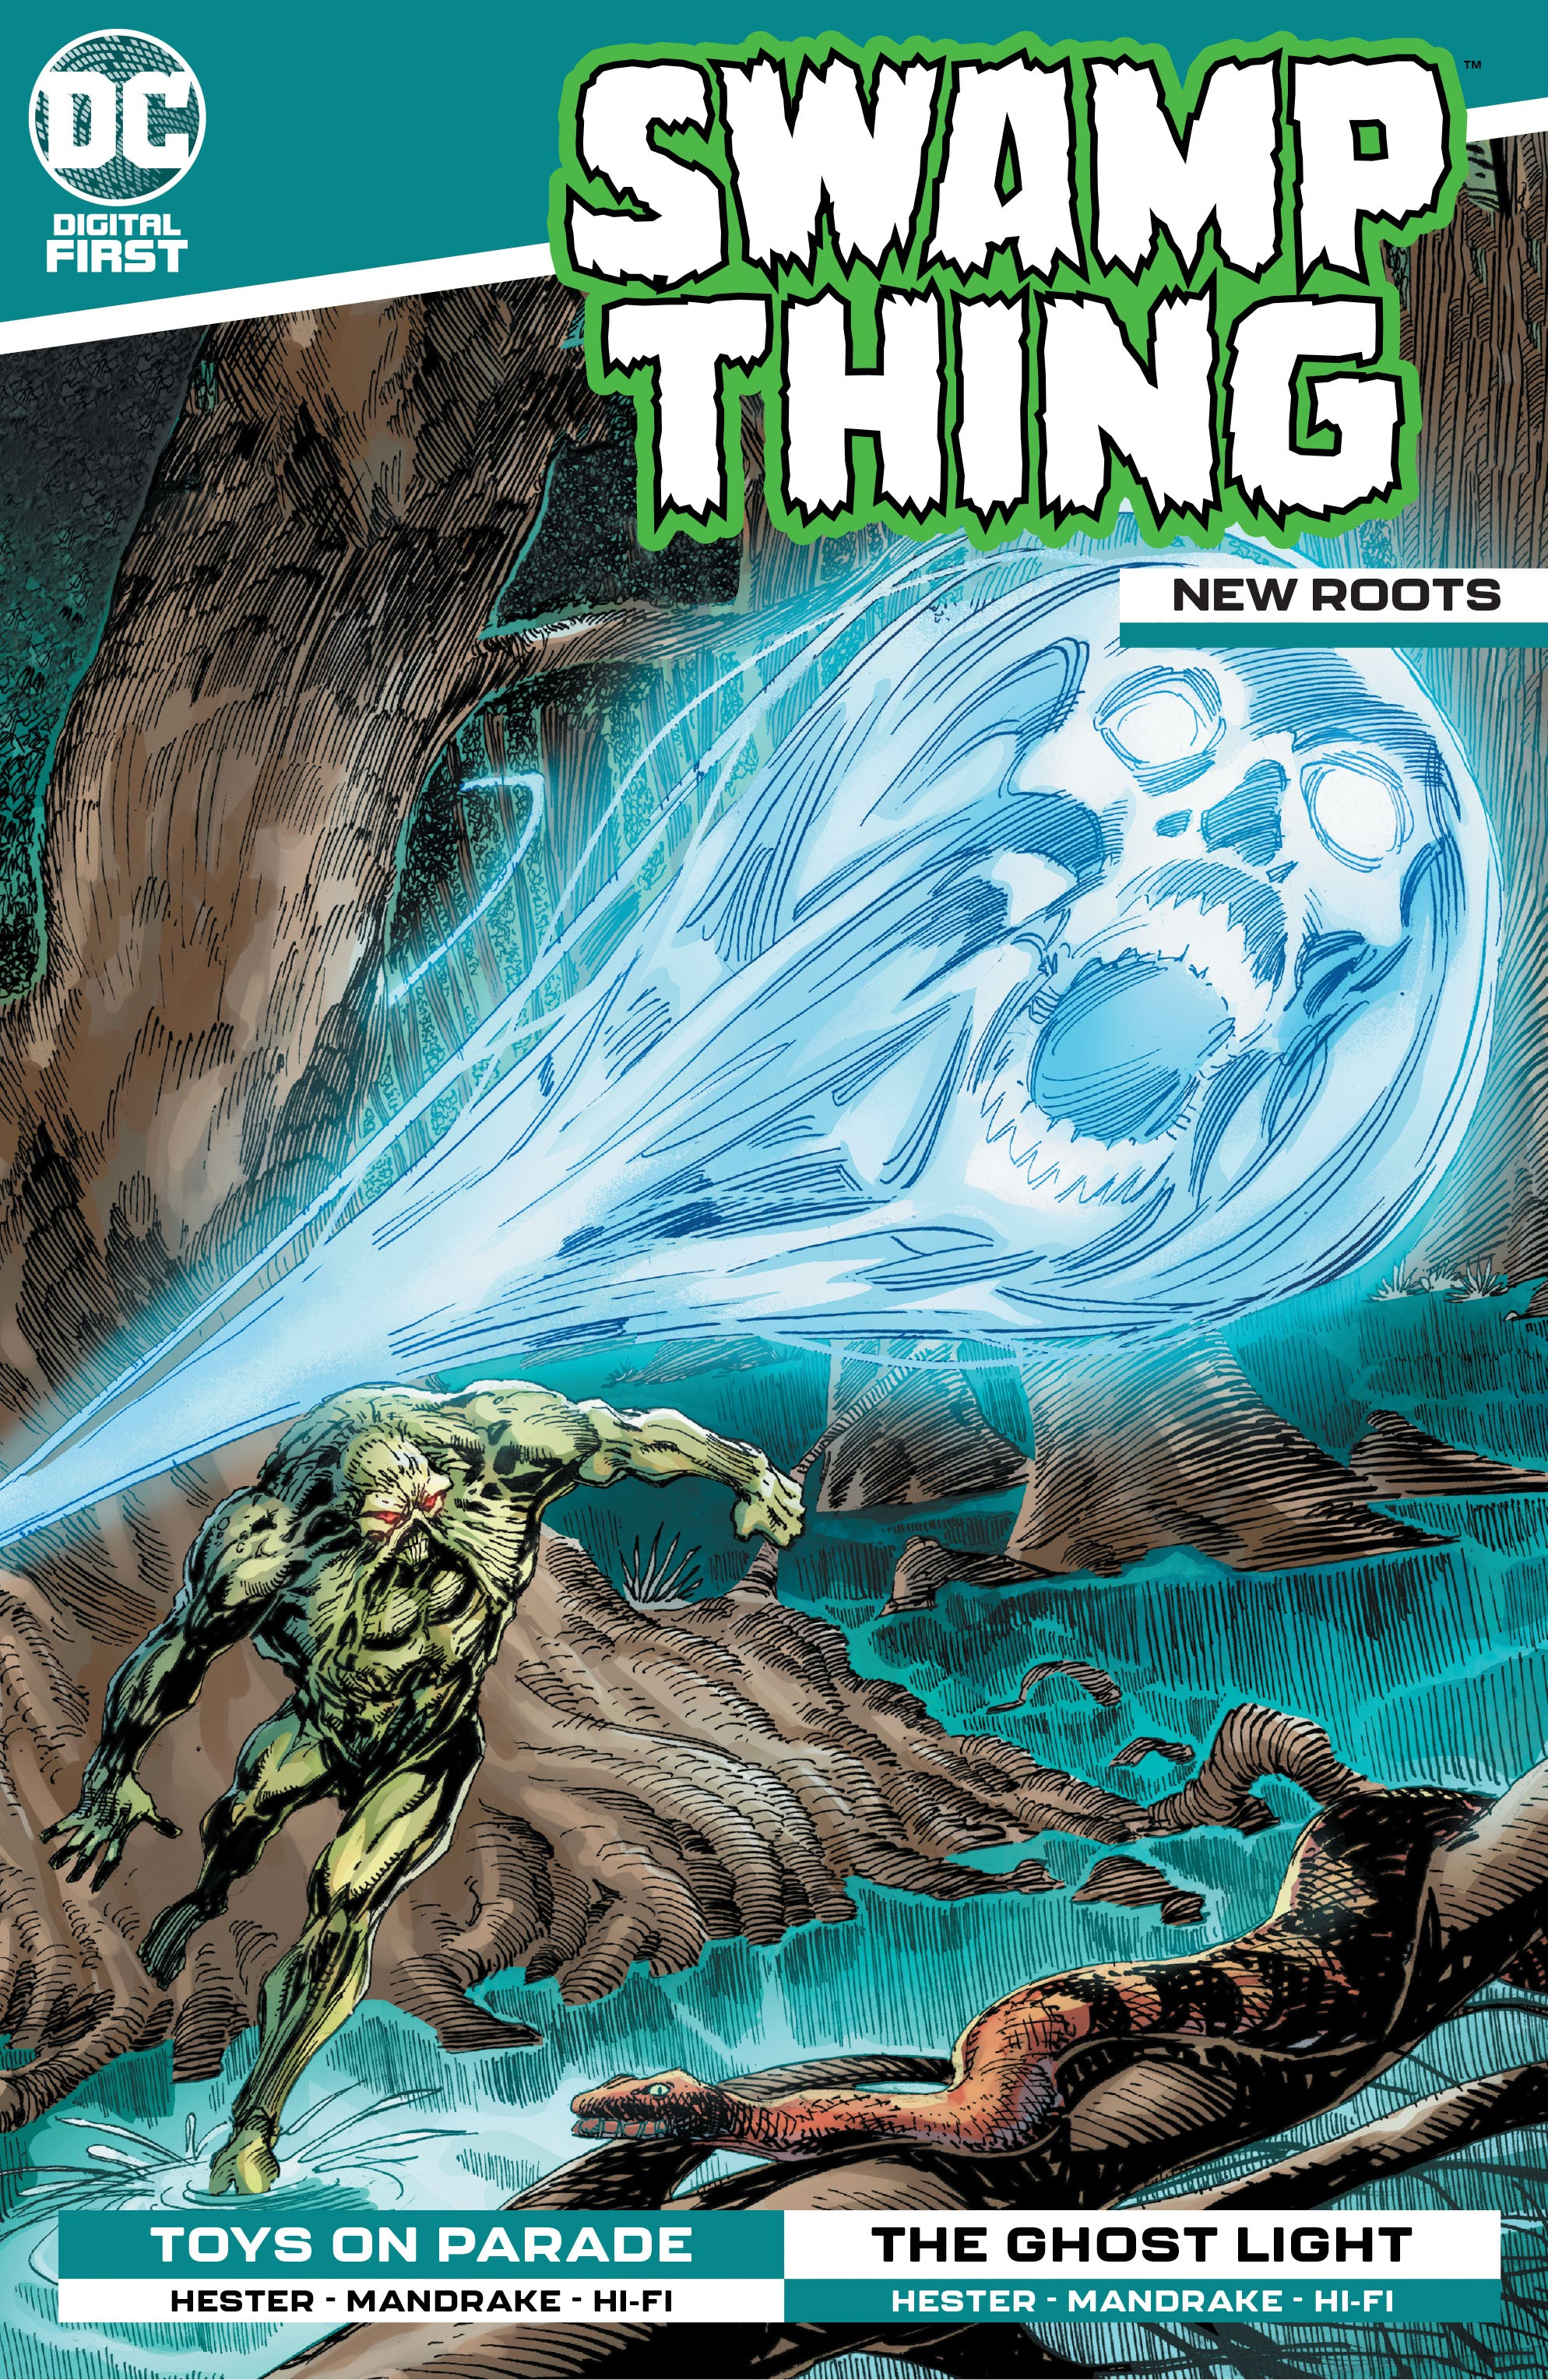 Swamp Thing: New Roots Vol 1 8 (Digital)